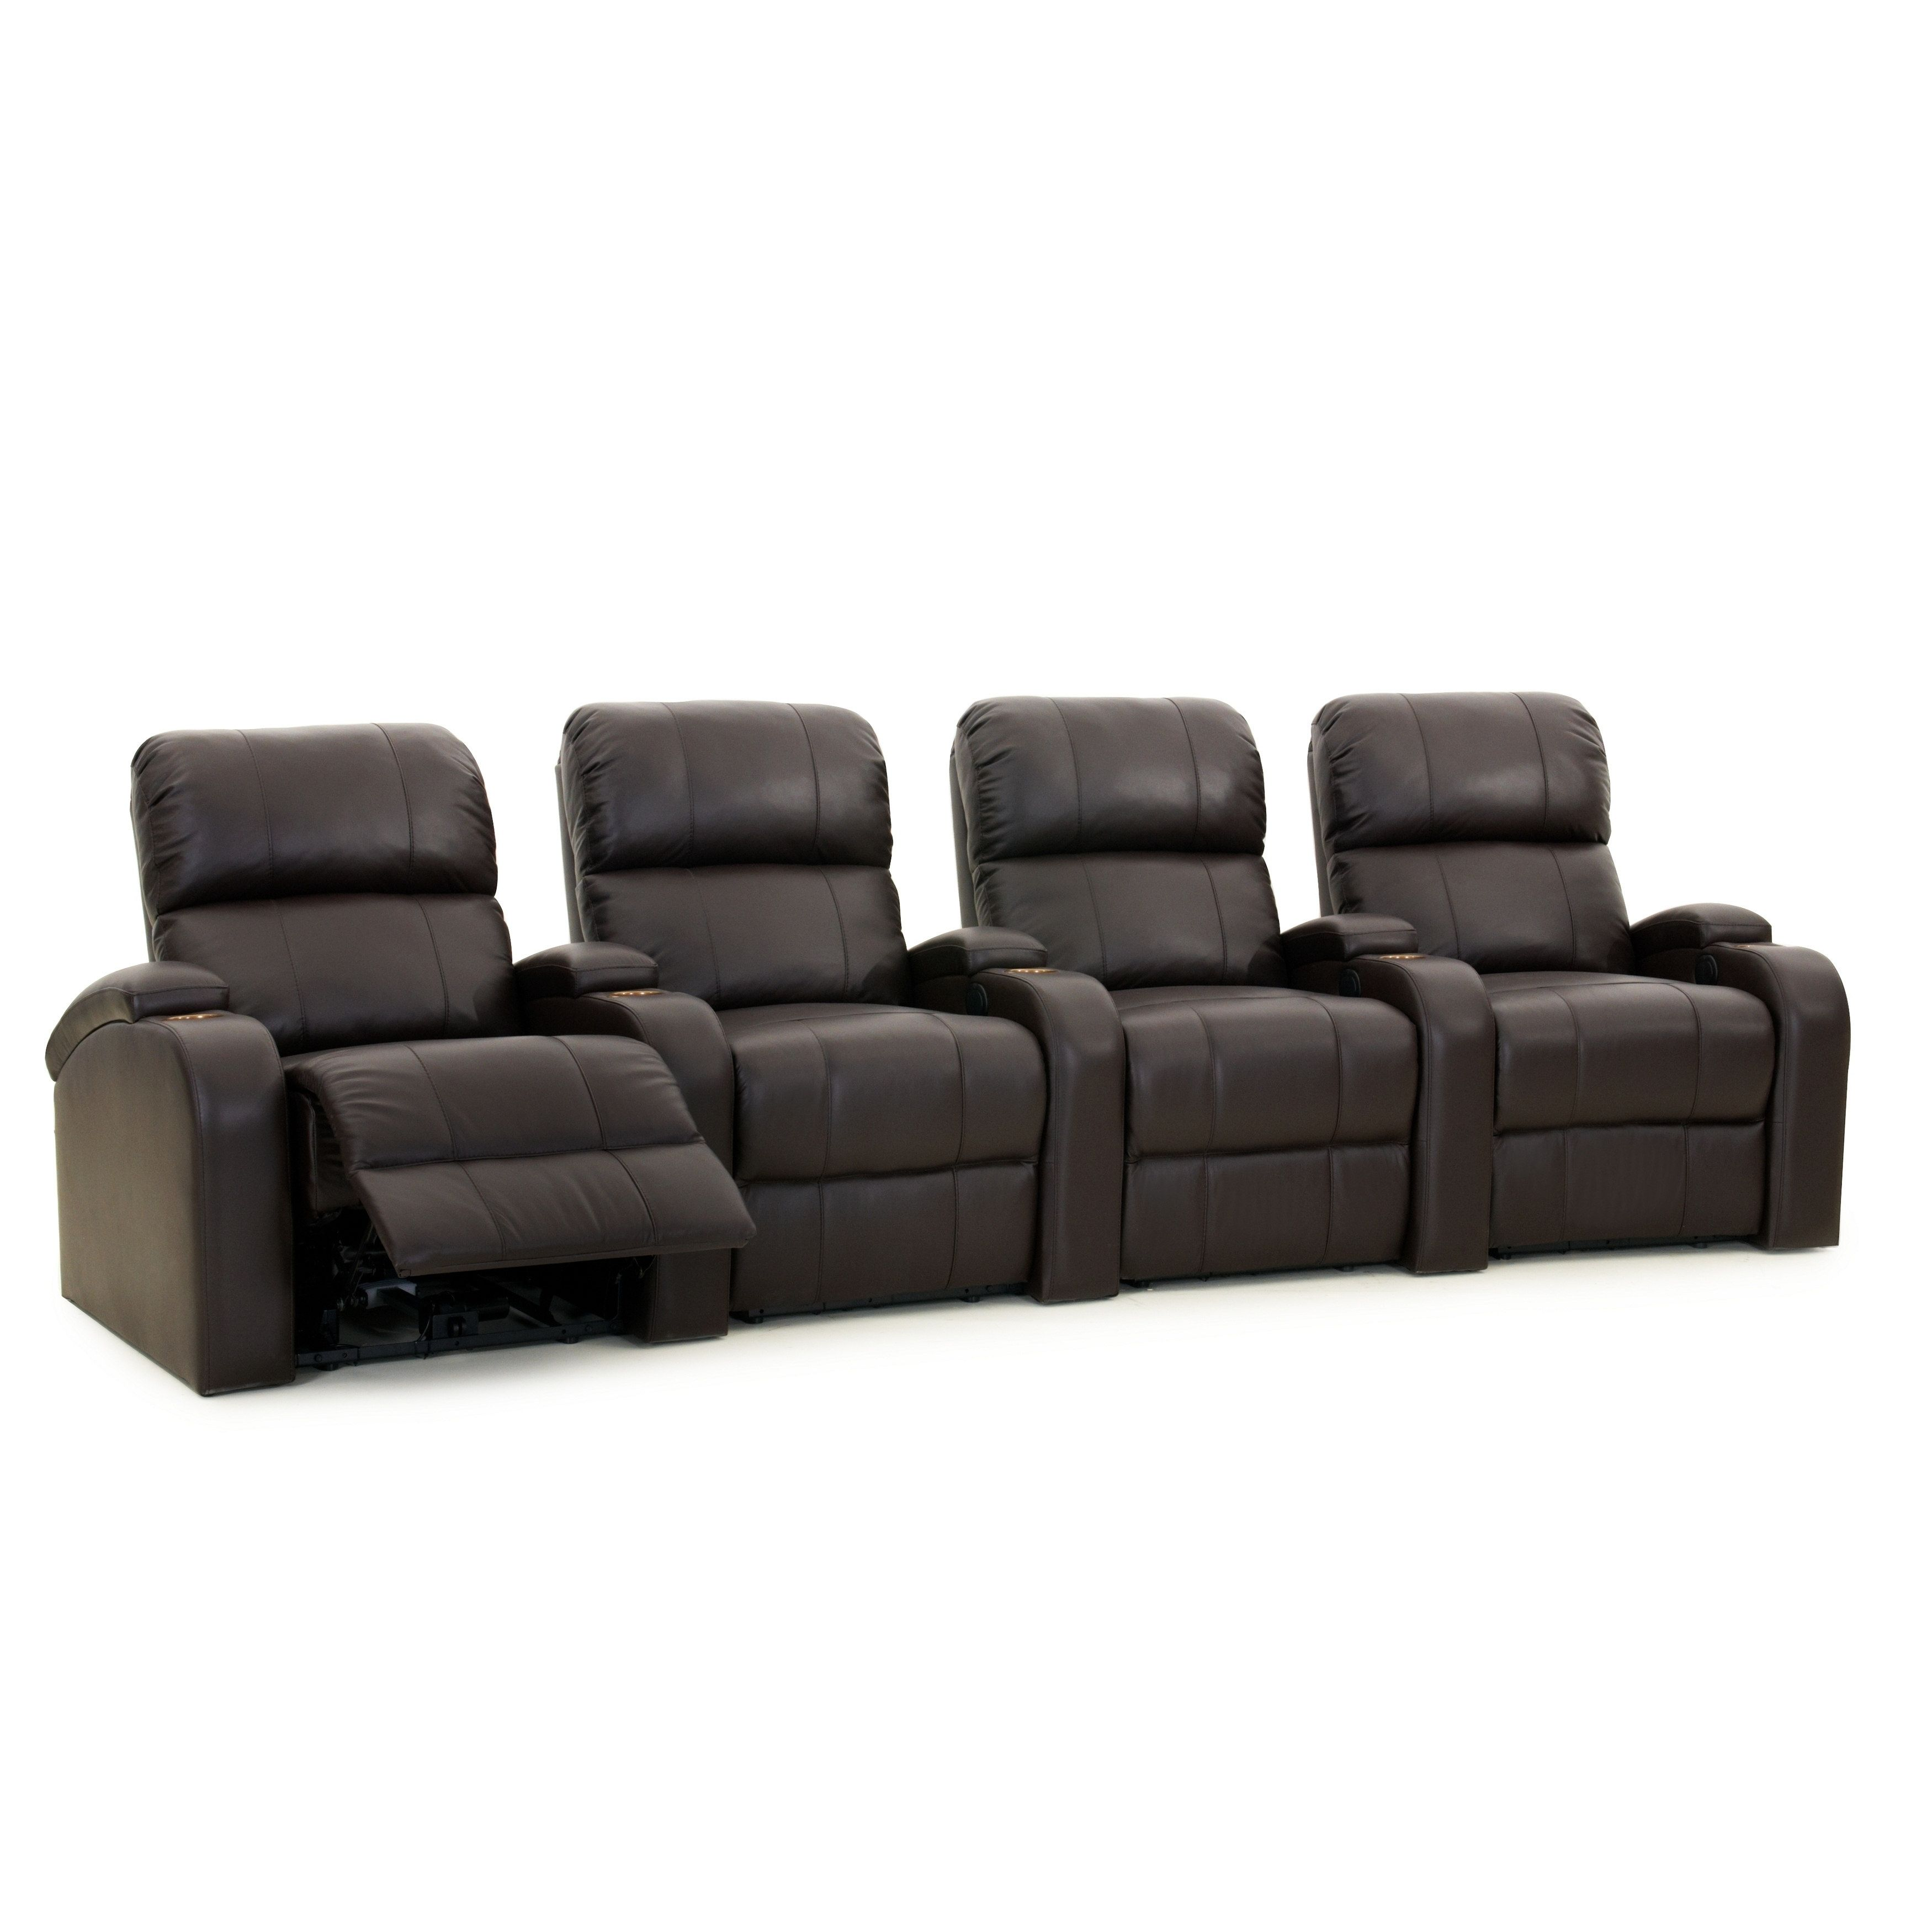 Octane Edge XL800 Power Leather Home Theater Seating Set Row of 4